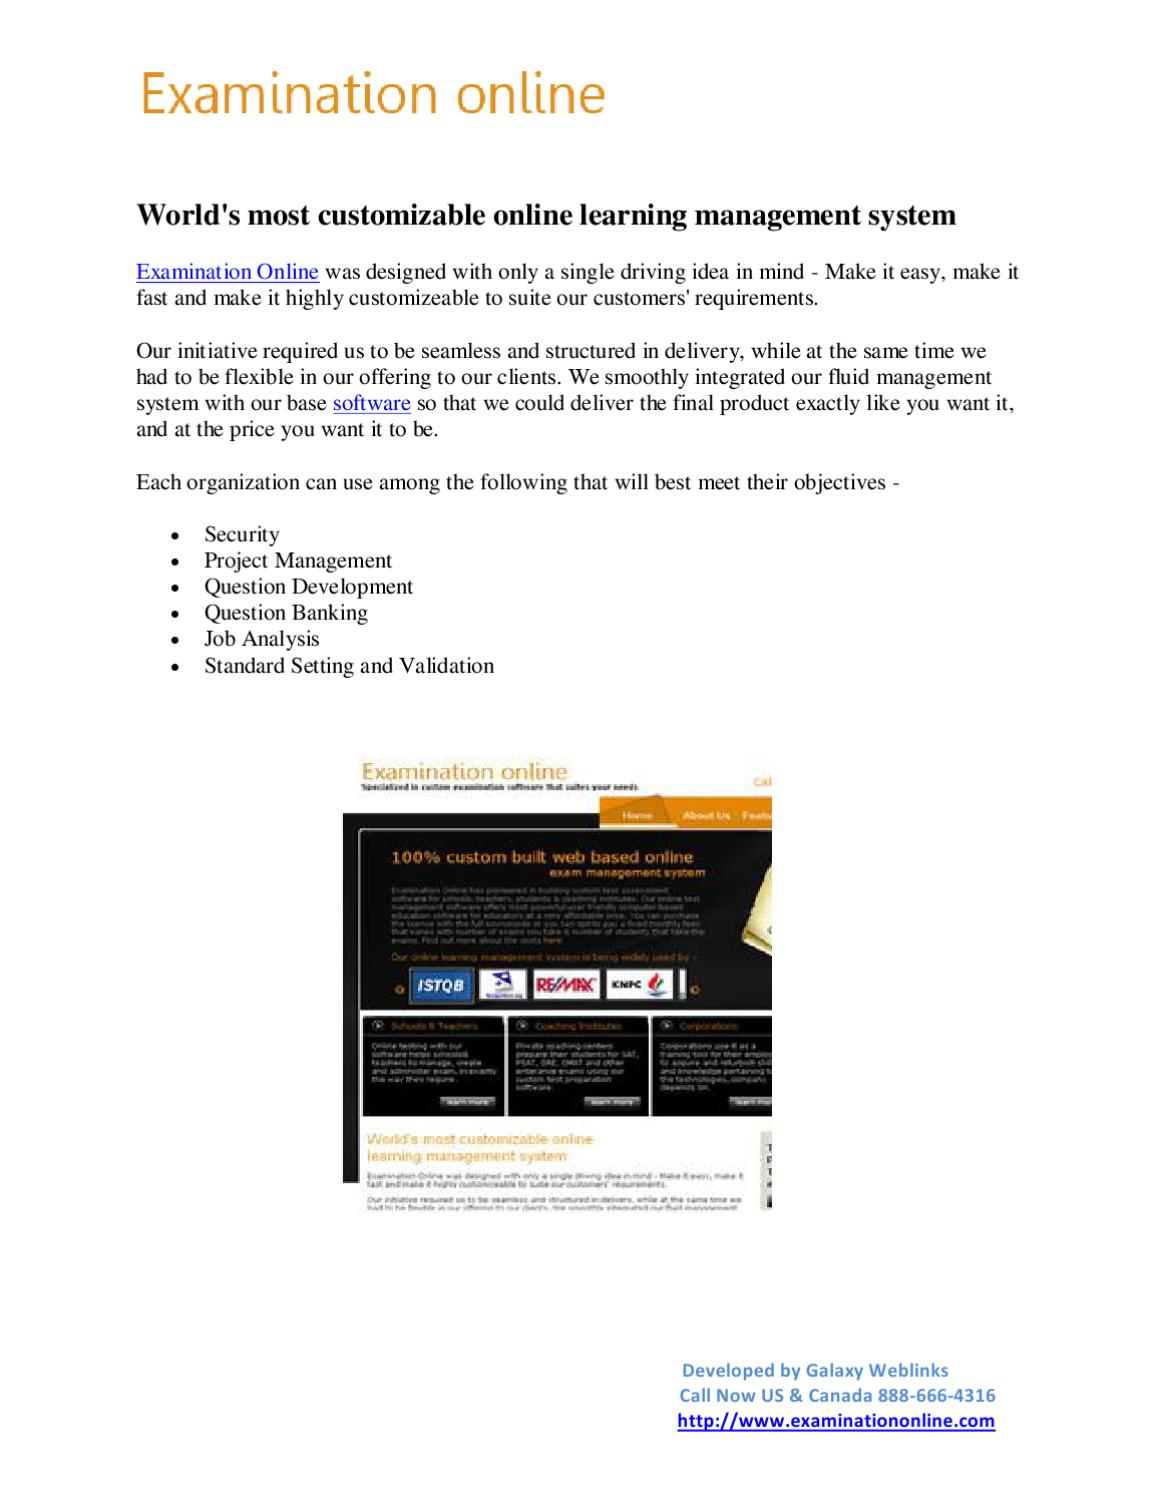 Web Based Learning Management System, Online Test Software by